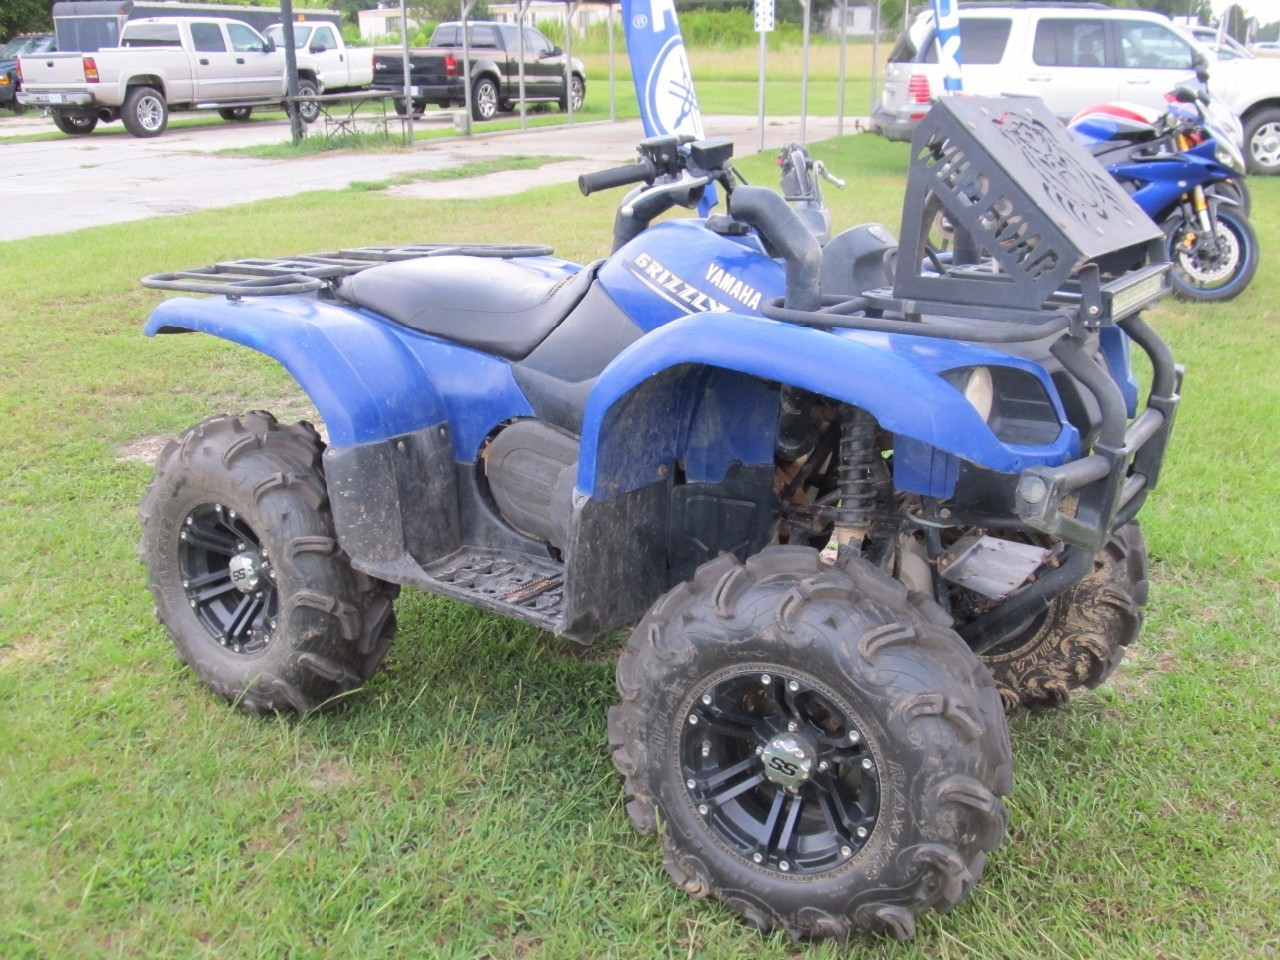 Yamaha Grizzly 660 >> Yamaha Grizzly 660 Tires And Wheels Atvs For Sale 12 Atvs